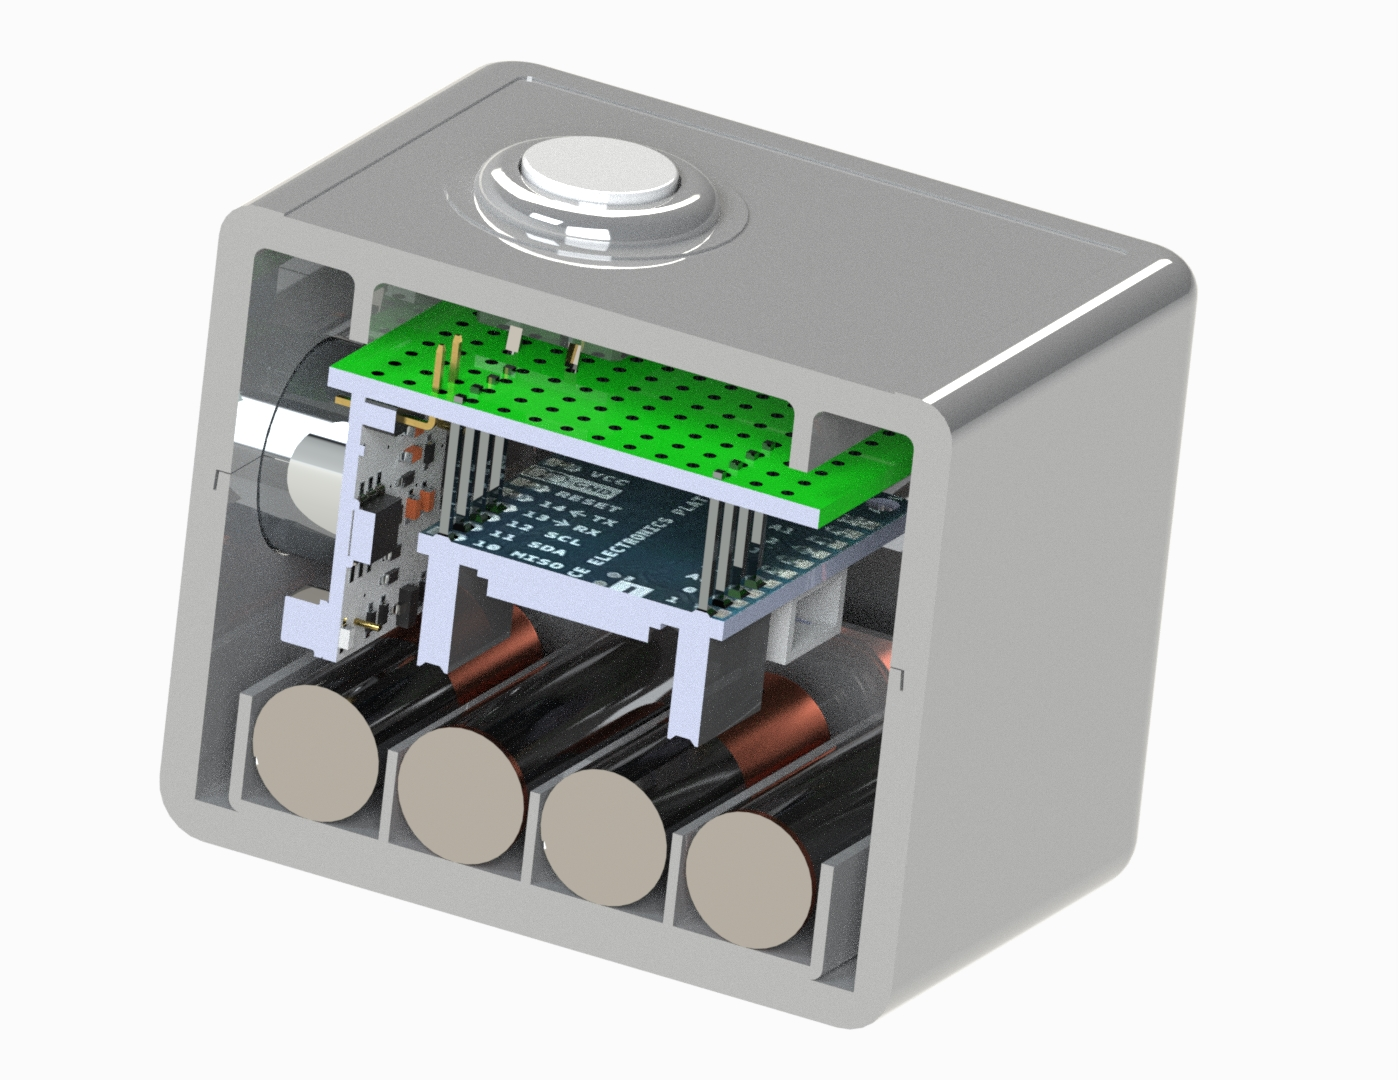 injection-molded-IOT-enclosure-in-cross-section-view-showing-battery-access-and-pcb-board